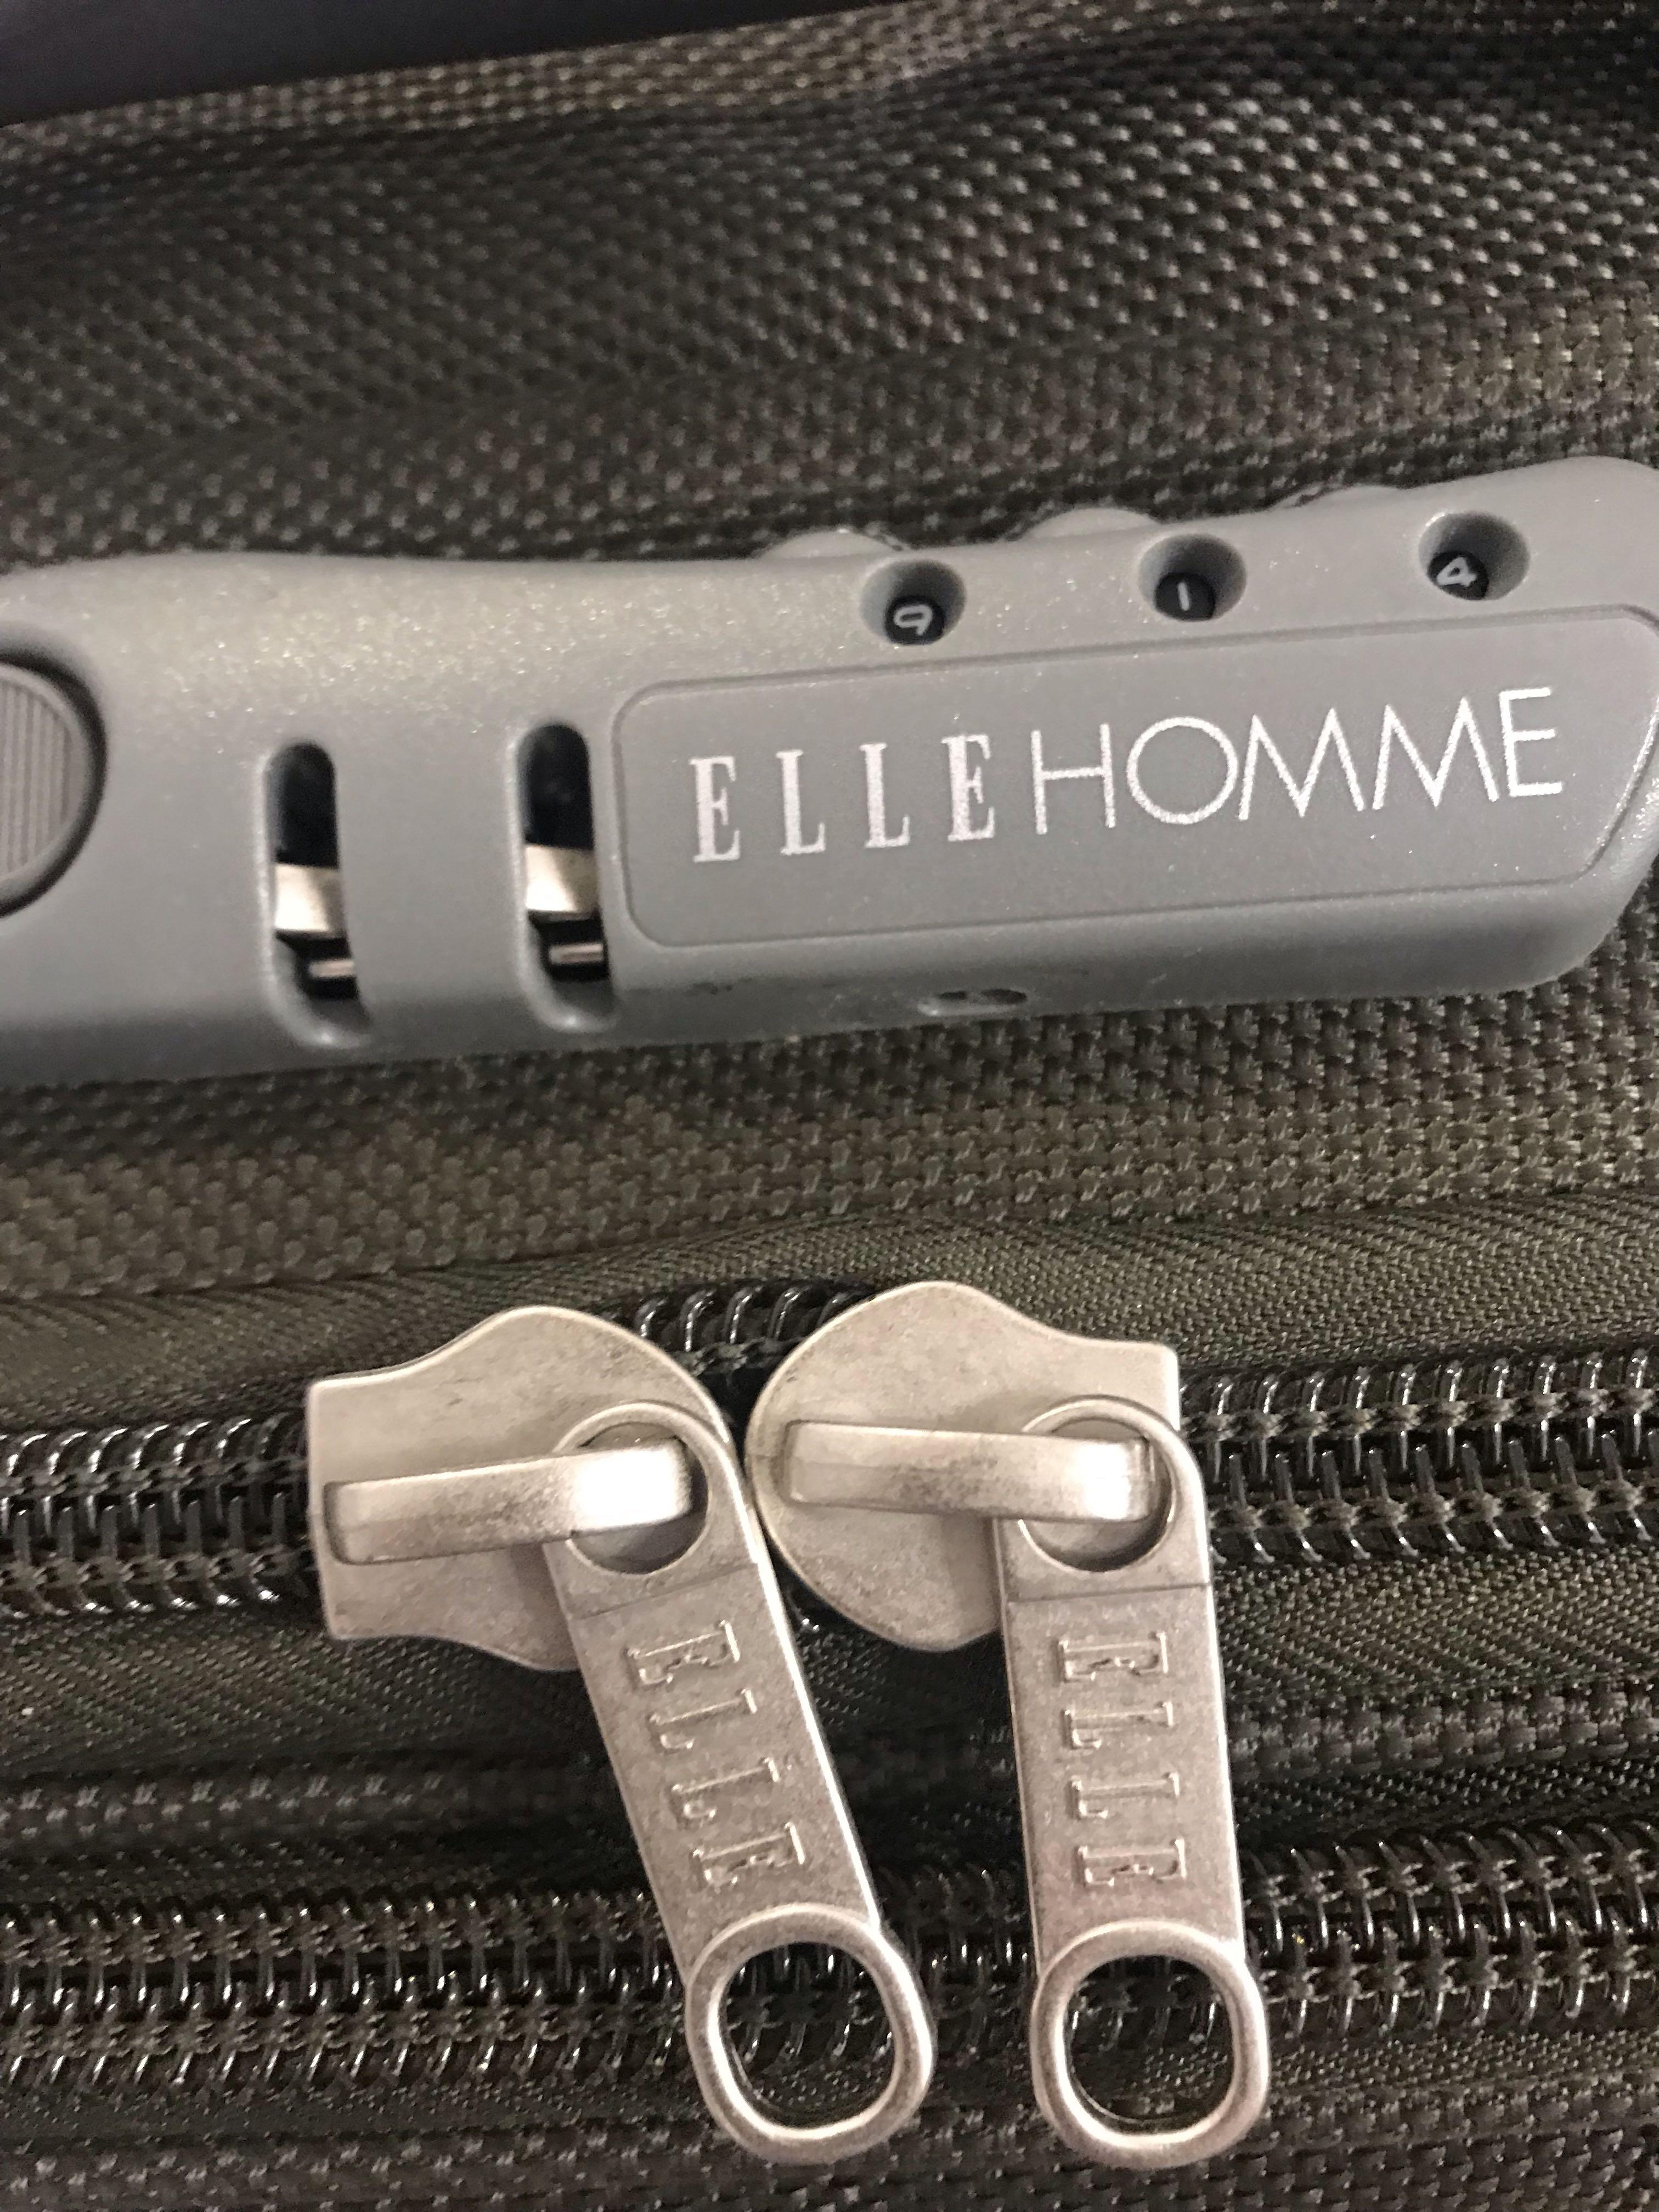 ELLE home luggage 喼, 軍綠同黑色各一, military green and black